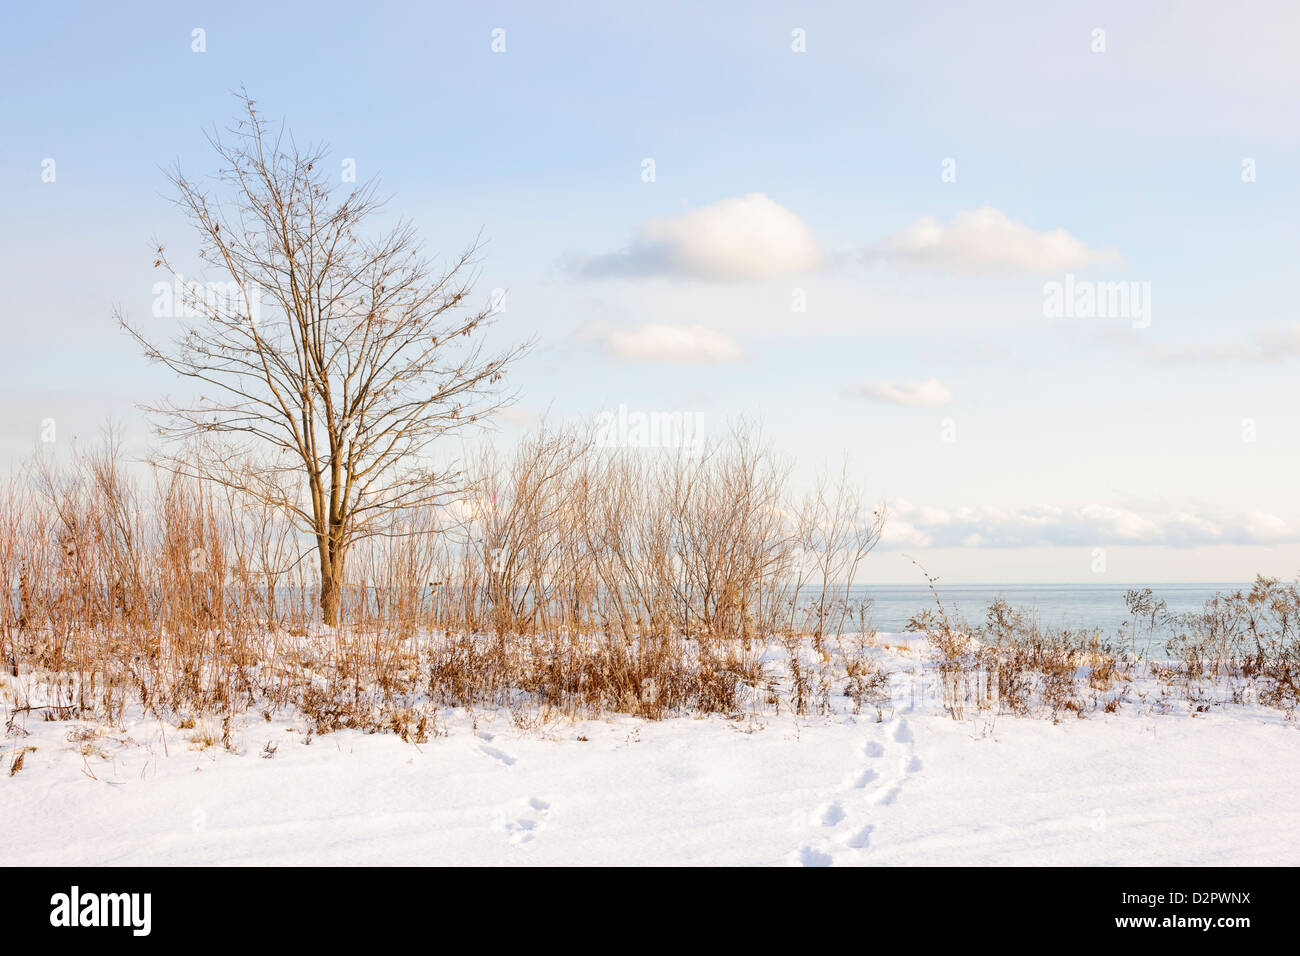 Snowy shore of lake Ontario in Sylvan park Toronto - Stock Image